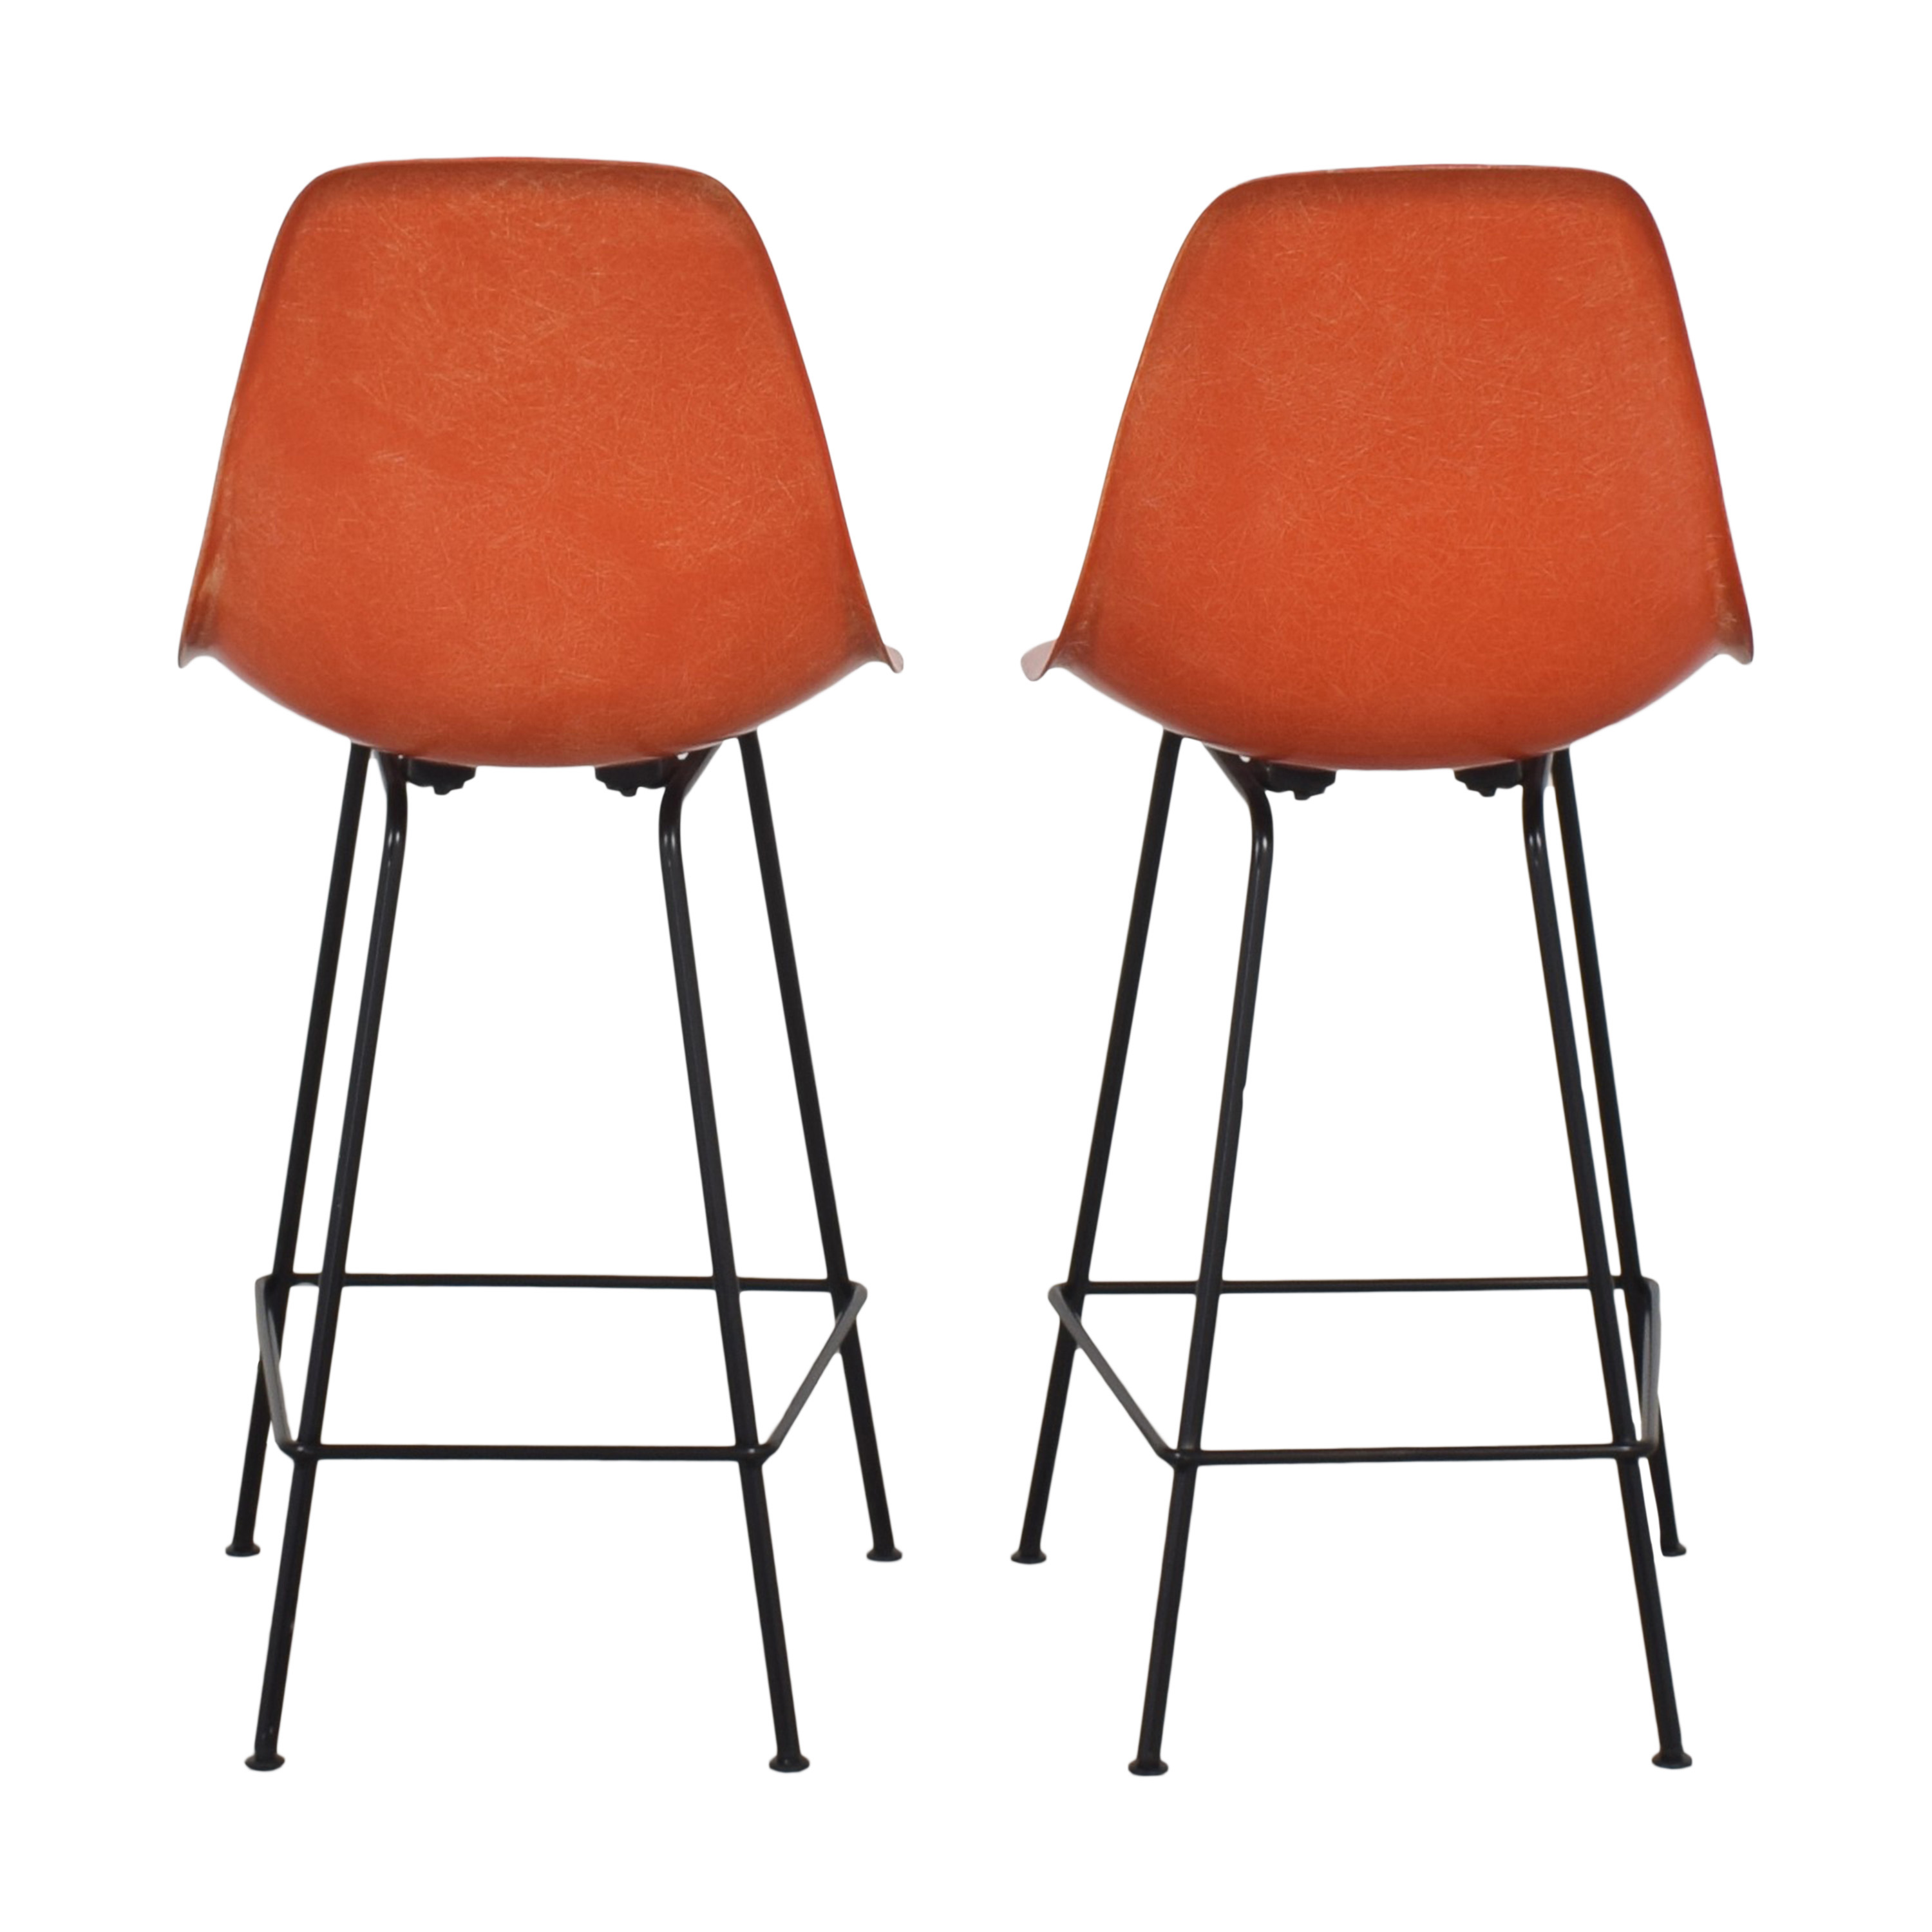 Herman Miller Herman Miller Eames Molded Counter Stools Chairs